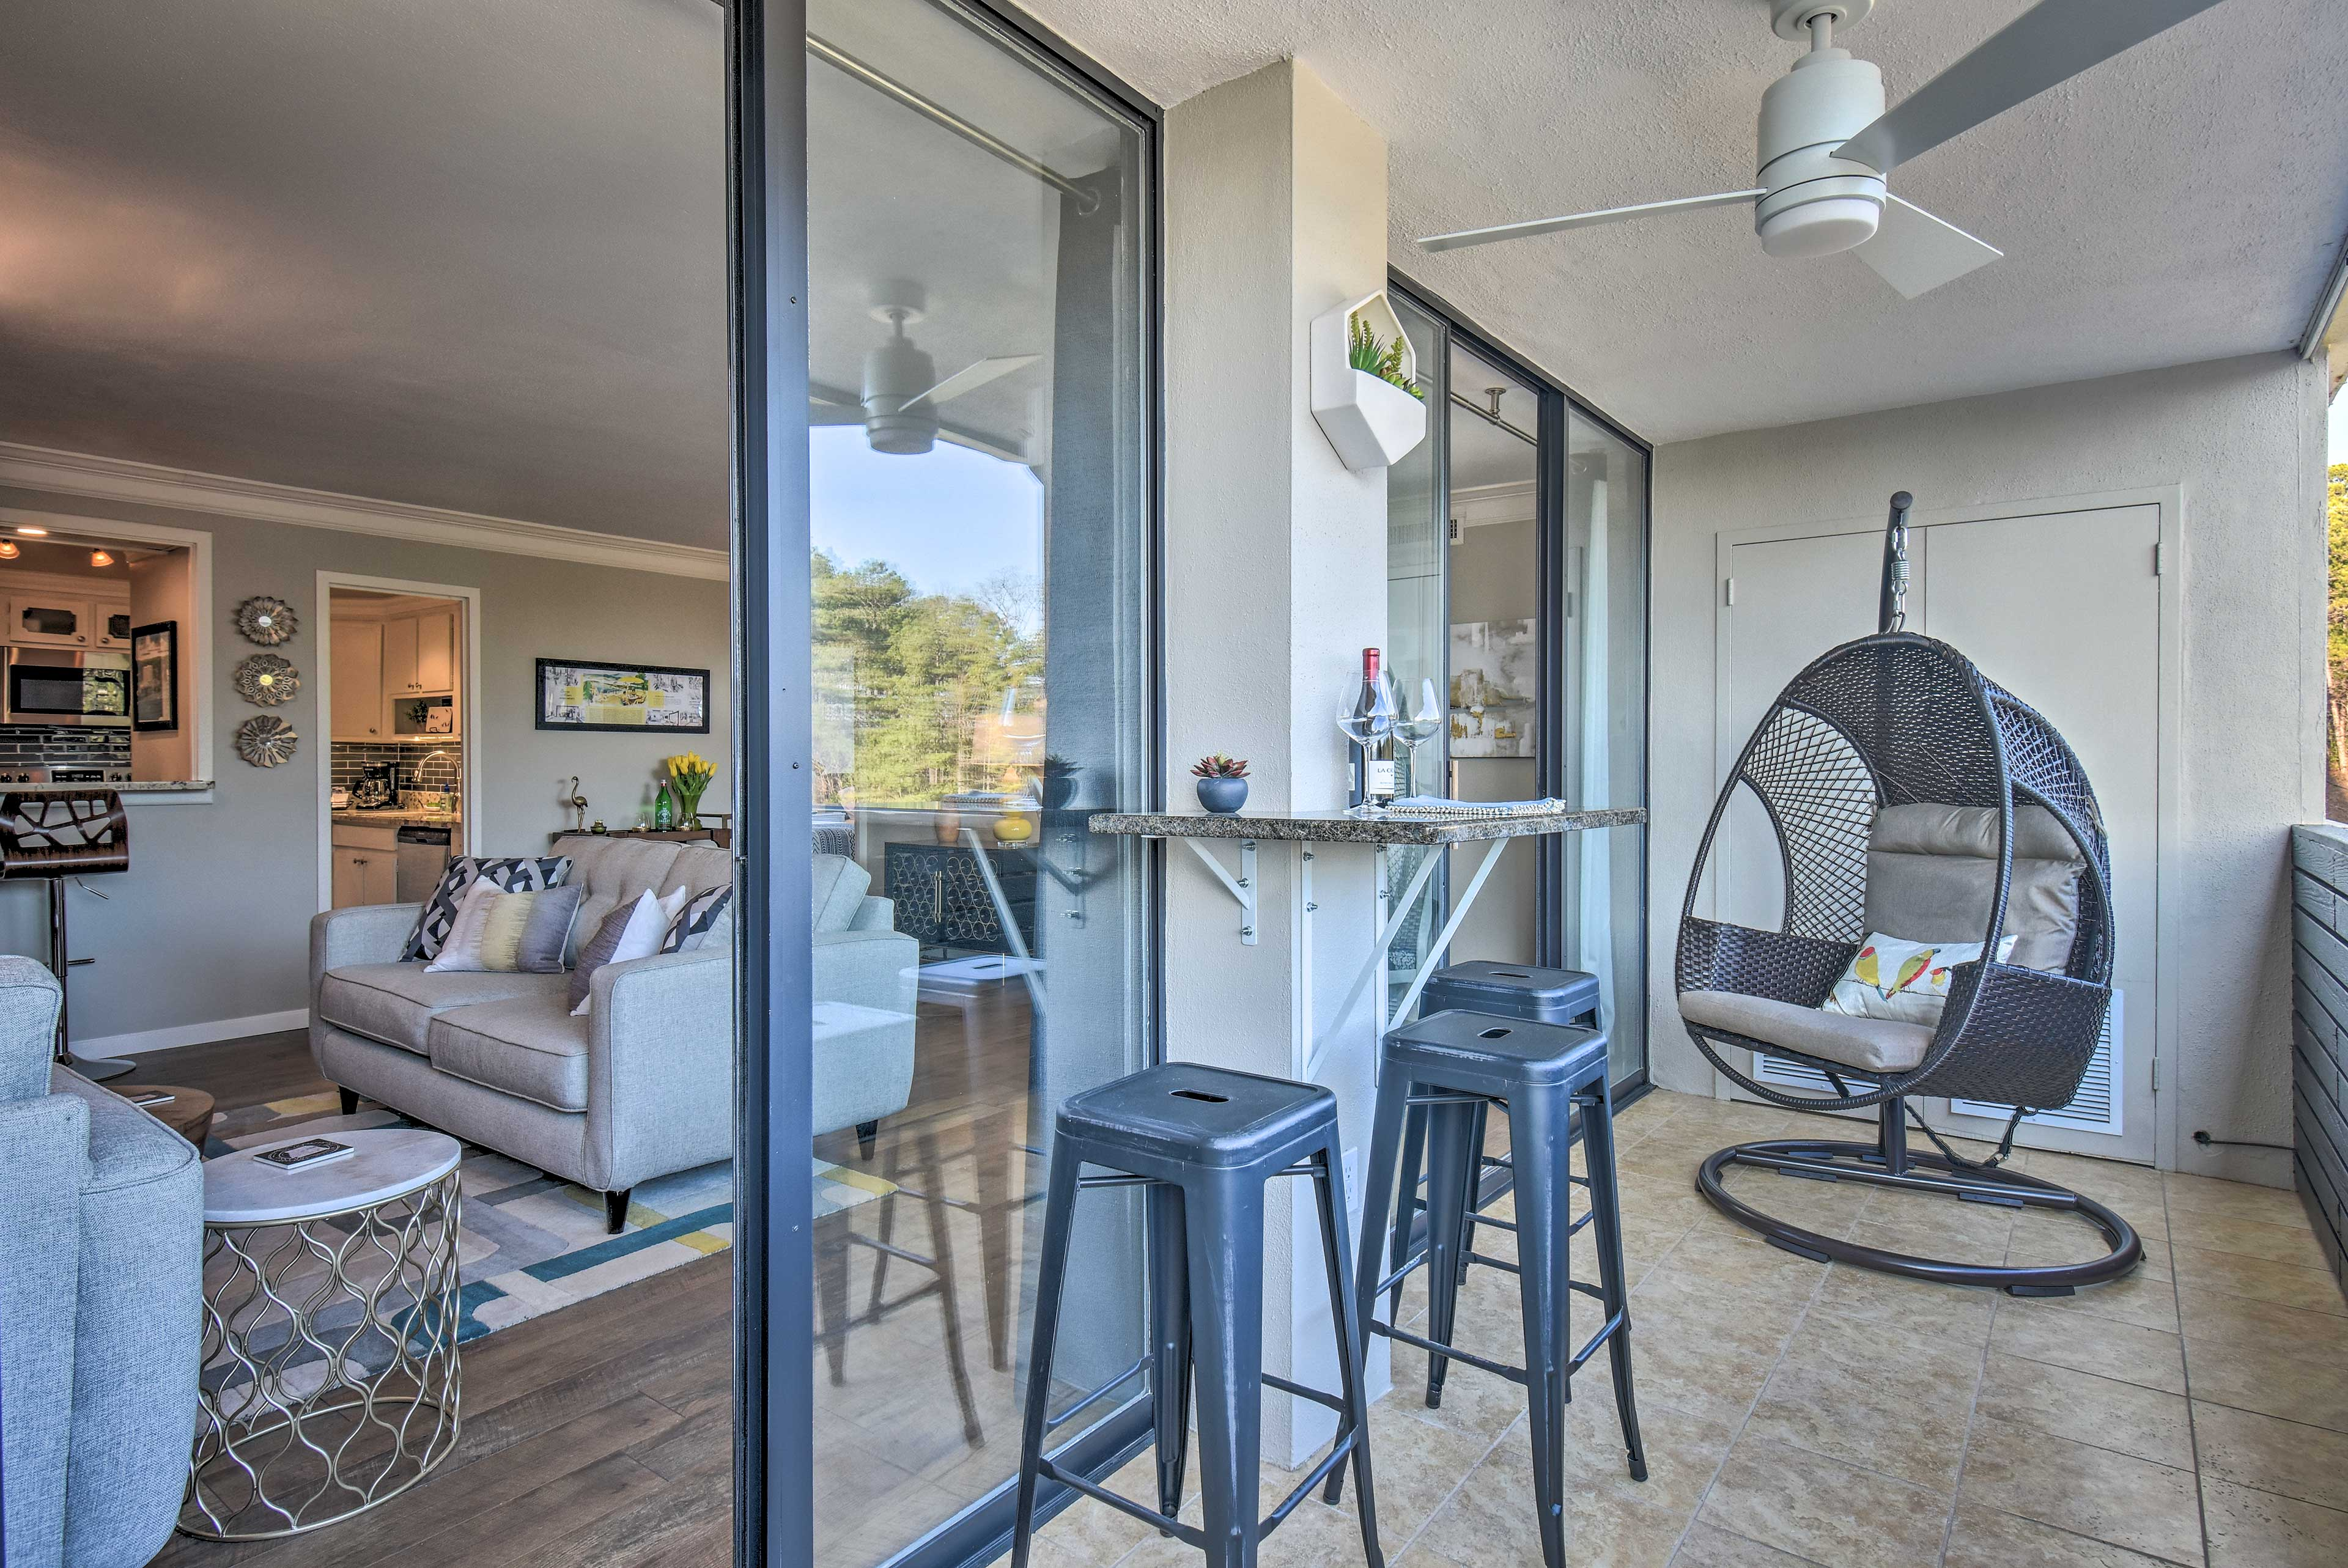 You'll have a private balcony with outdoor seating and water views.